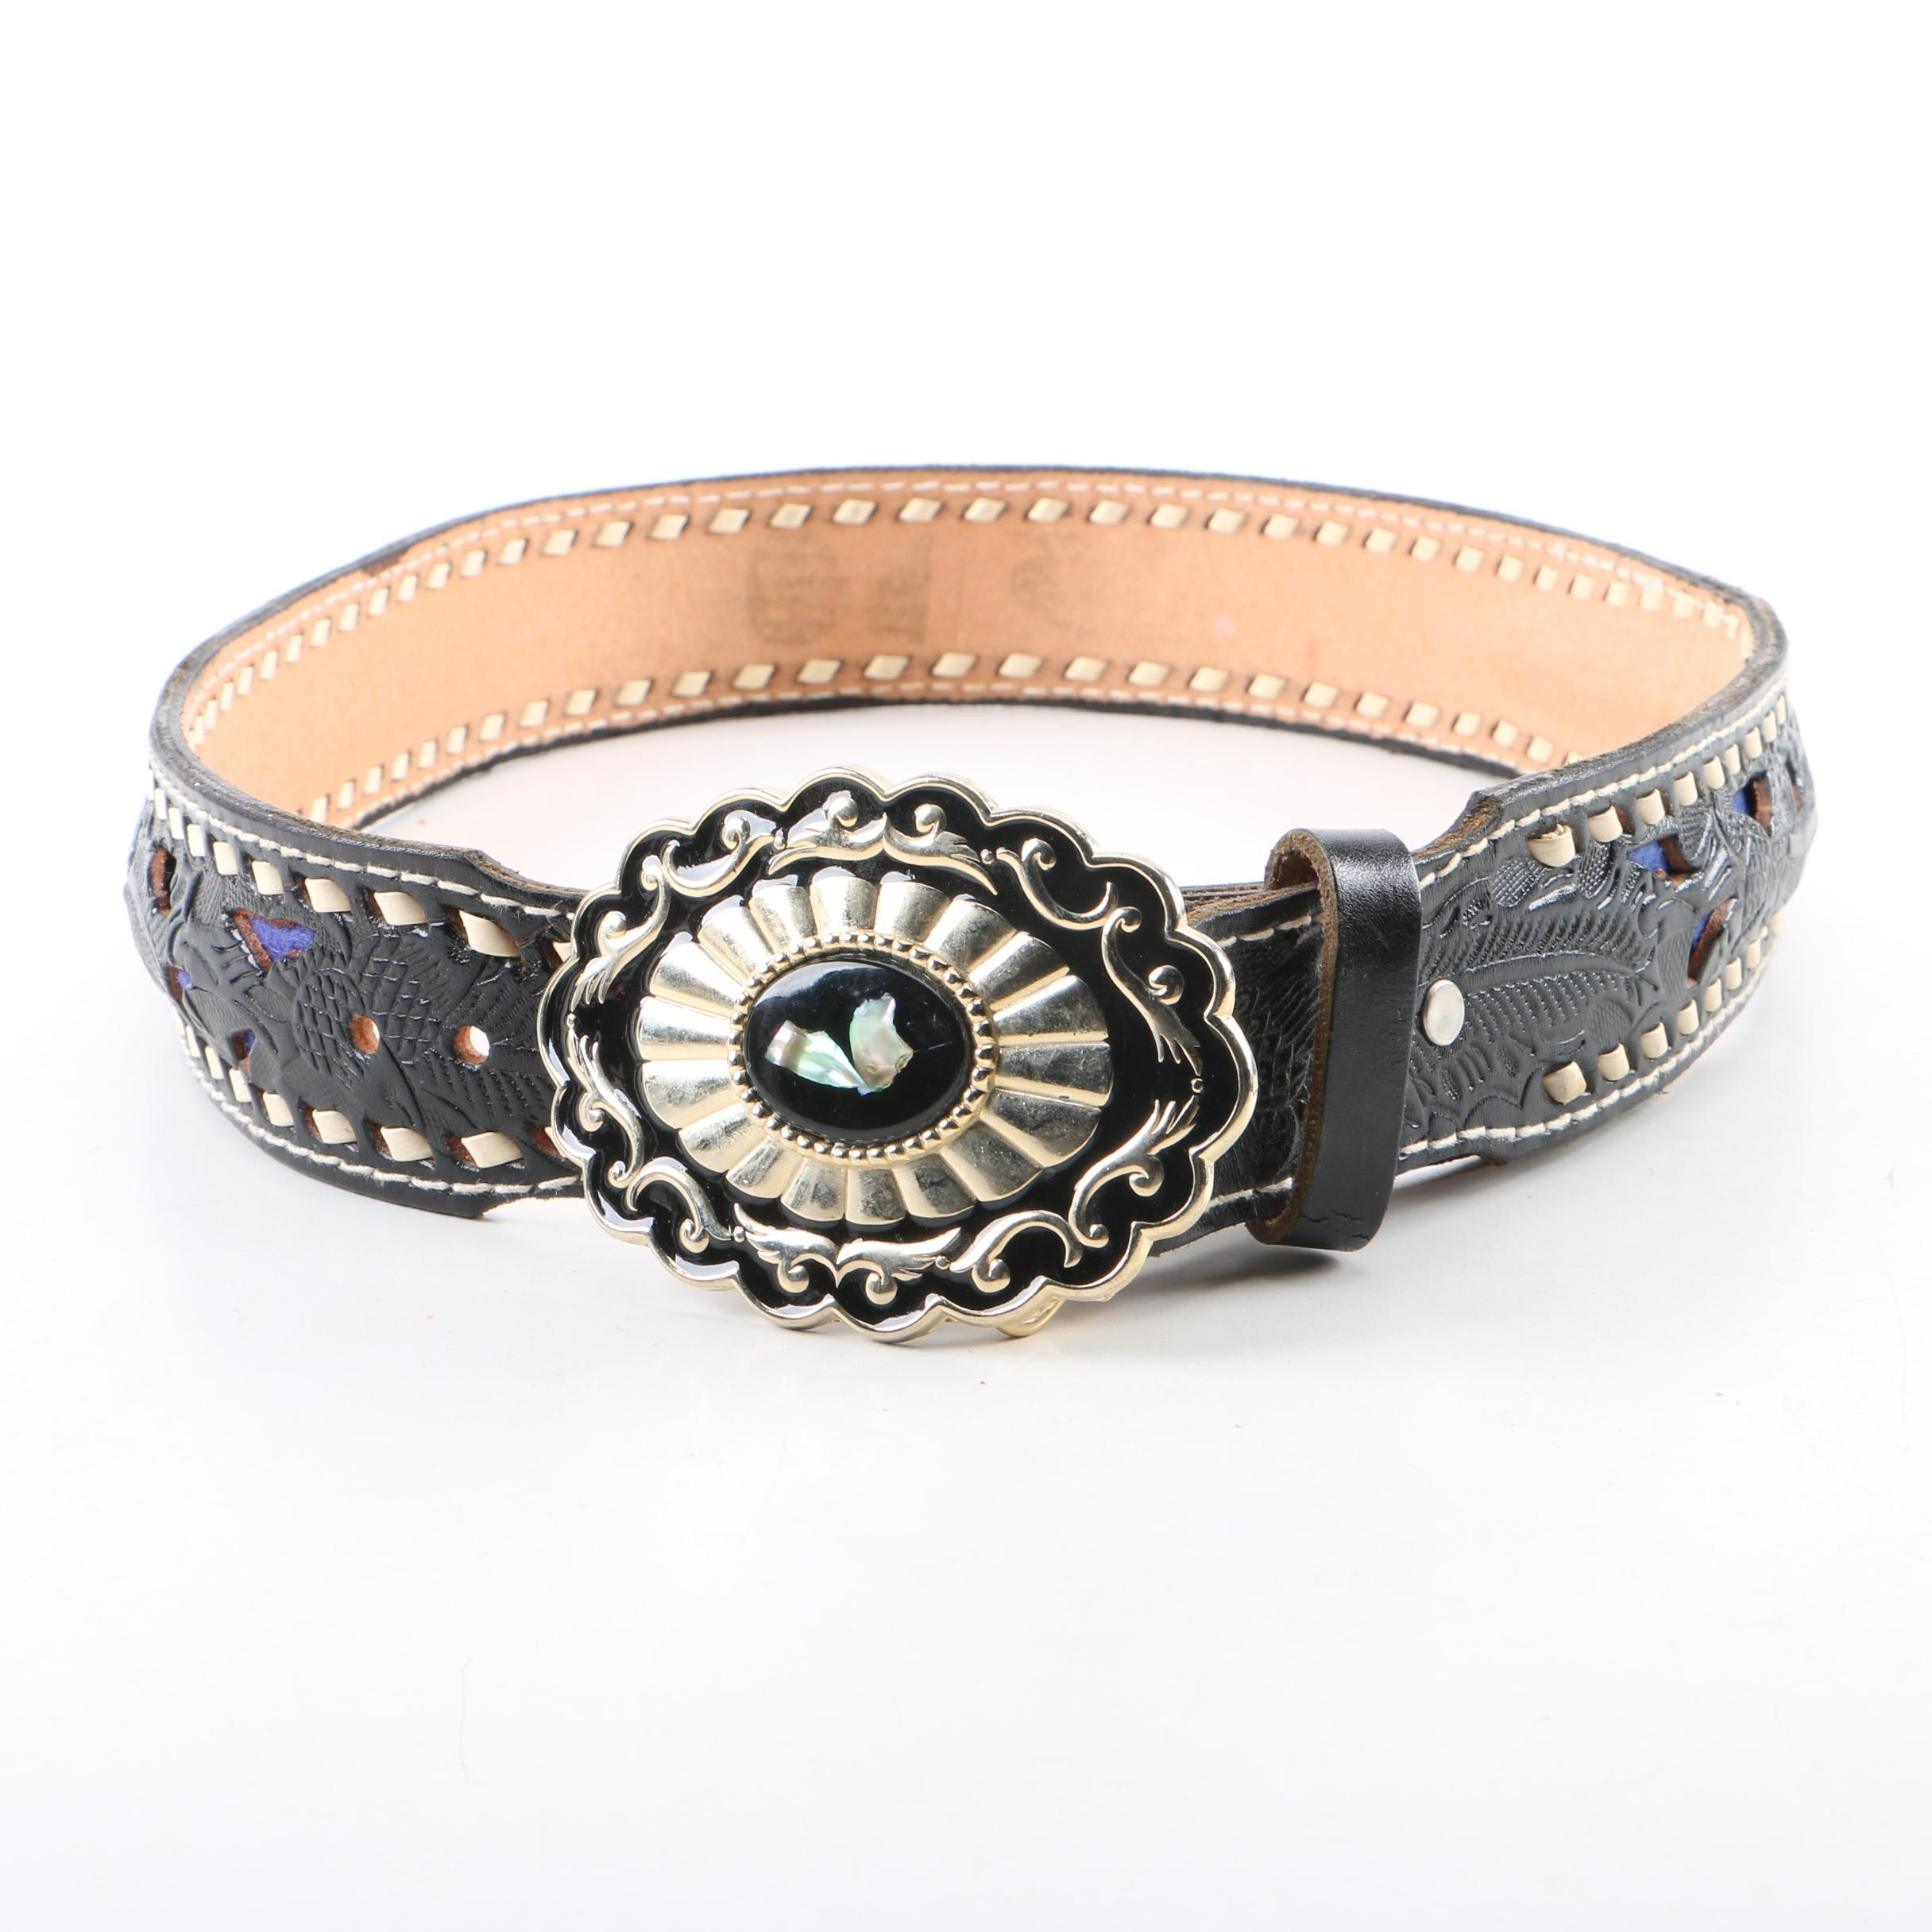 Women's Black Tooled Leather Belt with Abalone Accented Buckle